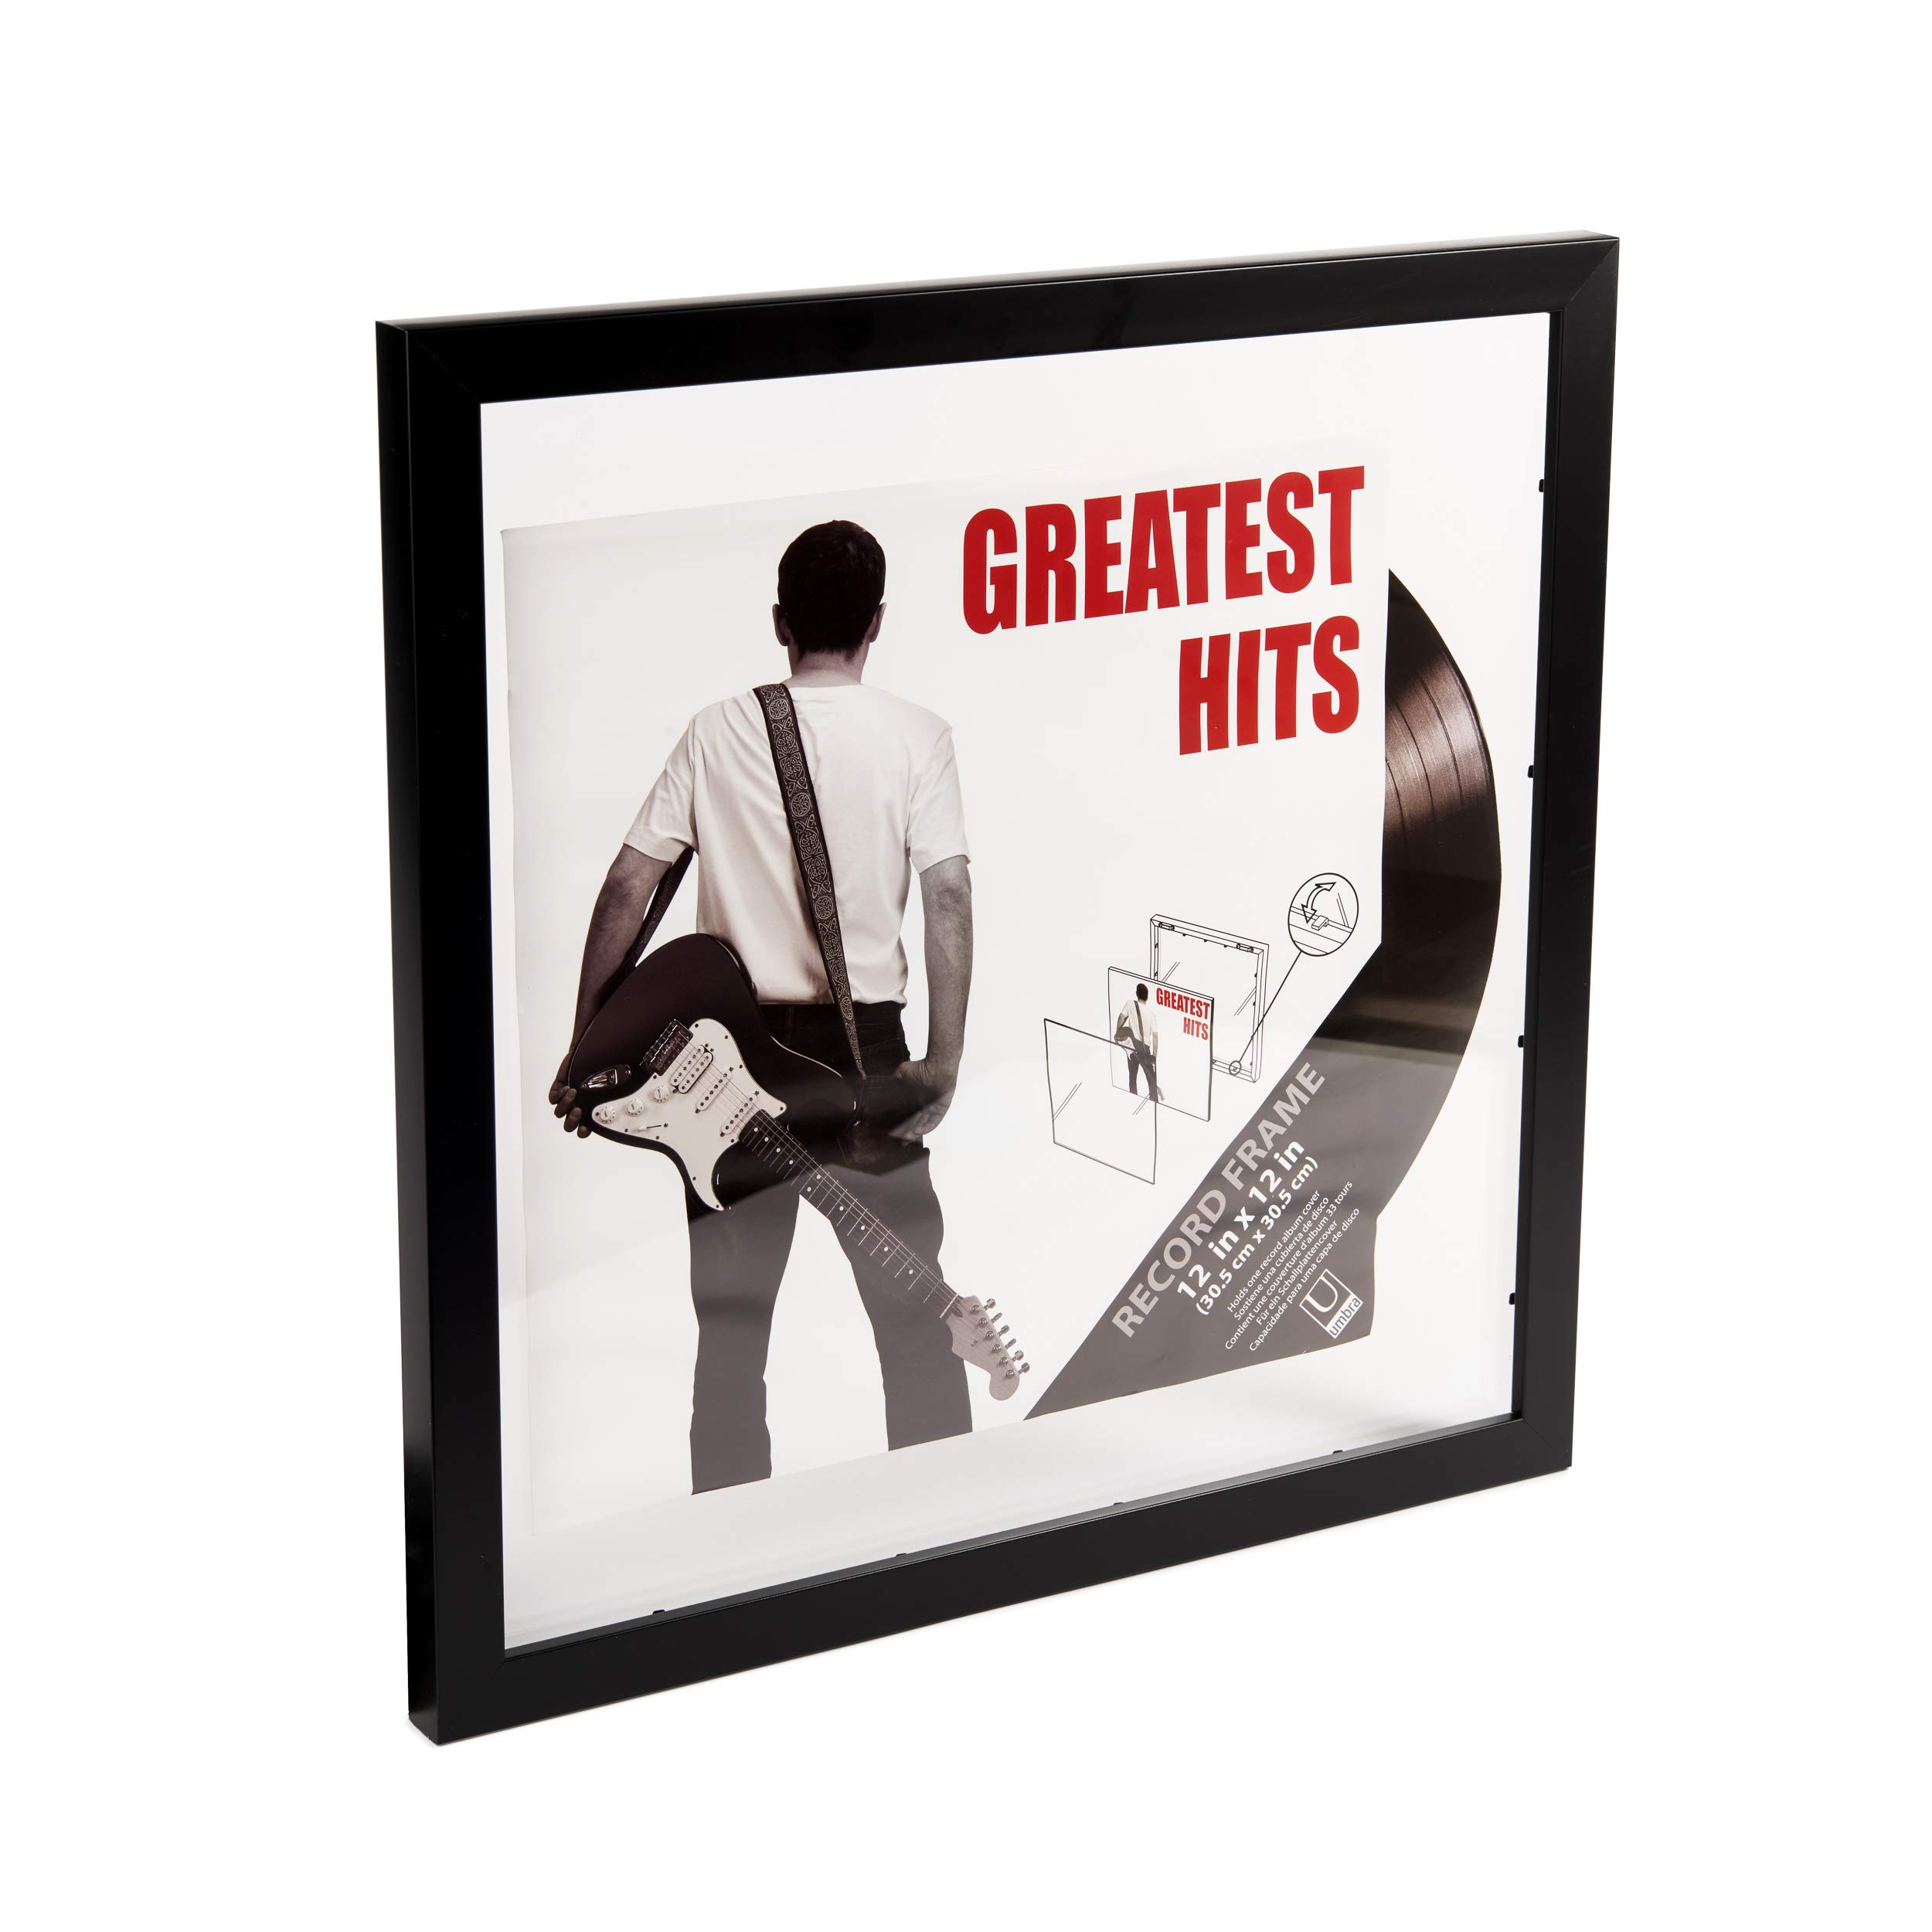 Umbra Record Album Frame 14-1/2x14-1/2-Inch, Modern Picture Frame Designed to Display a Floating 12-Inch by 12-Inch Album Cover by Umbra (Image #6)